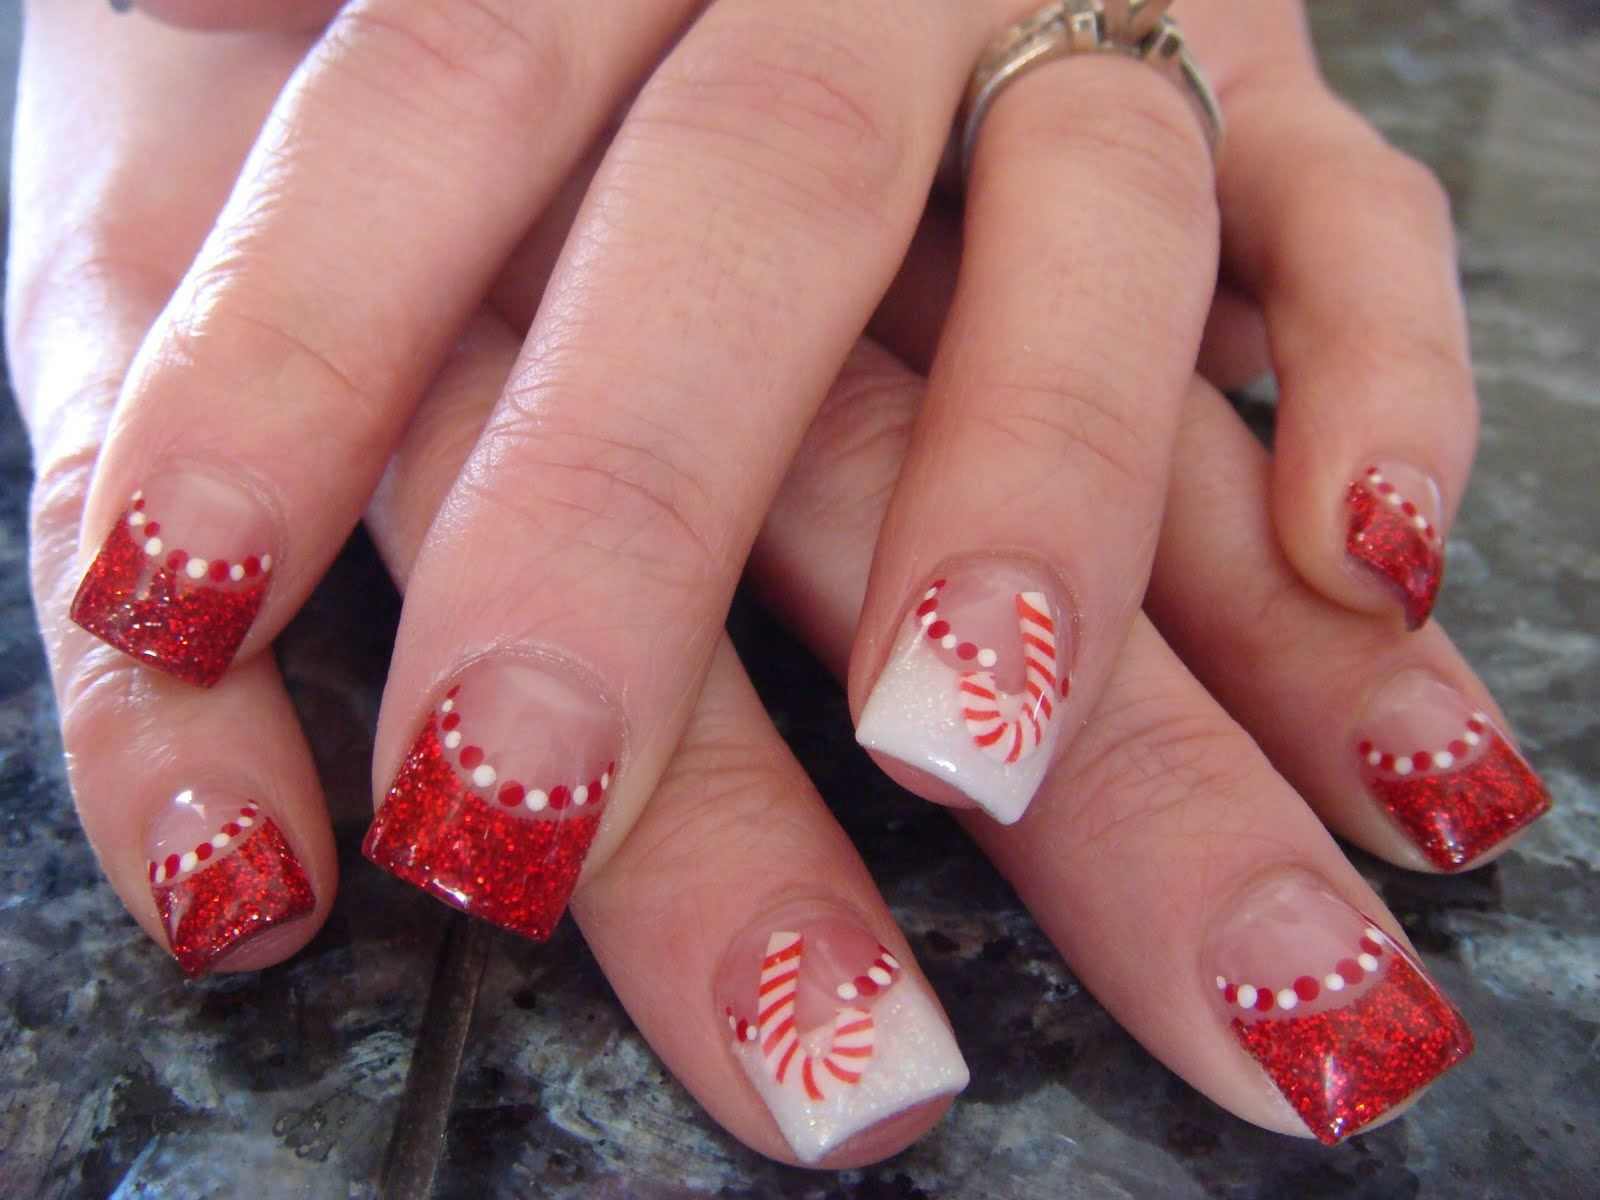 Candy cane nails with glitter